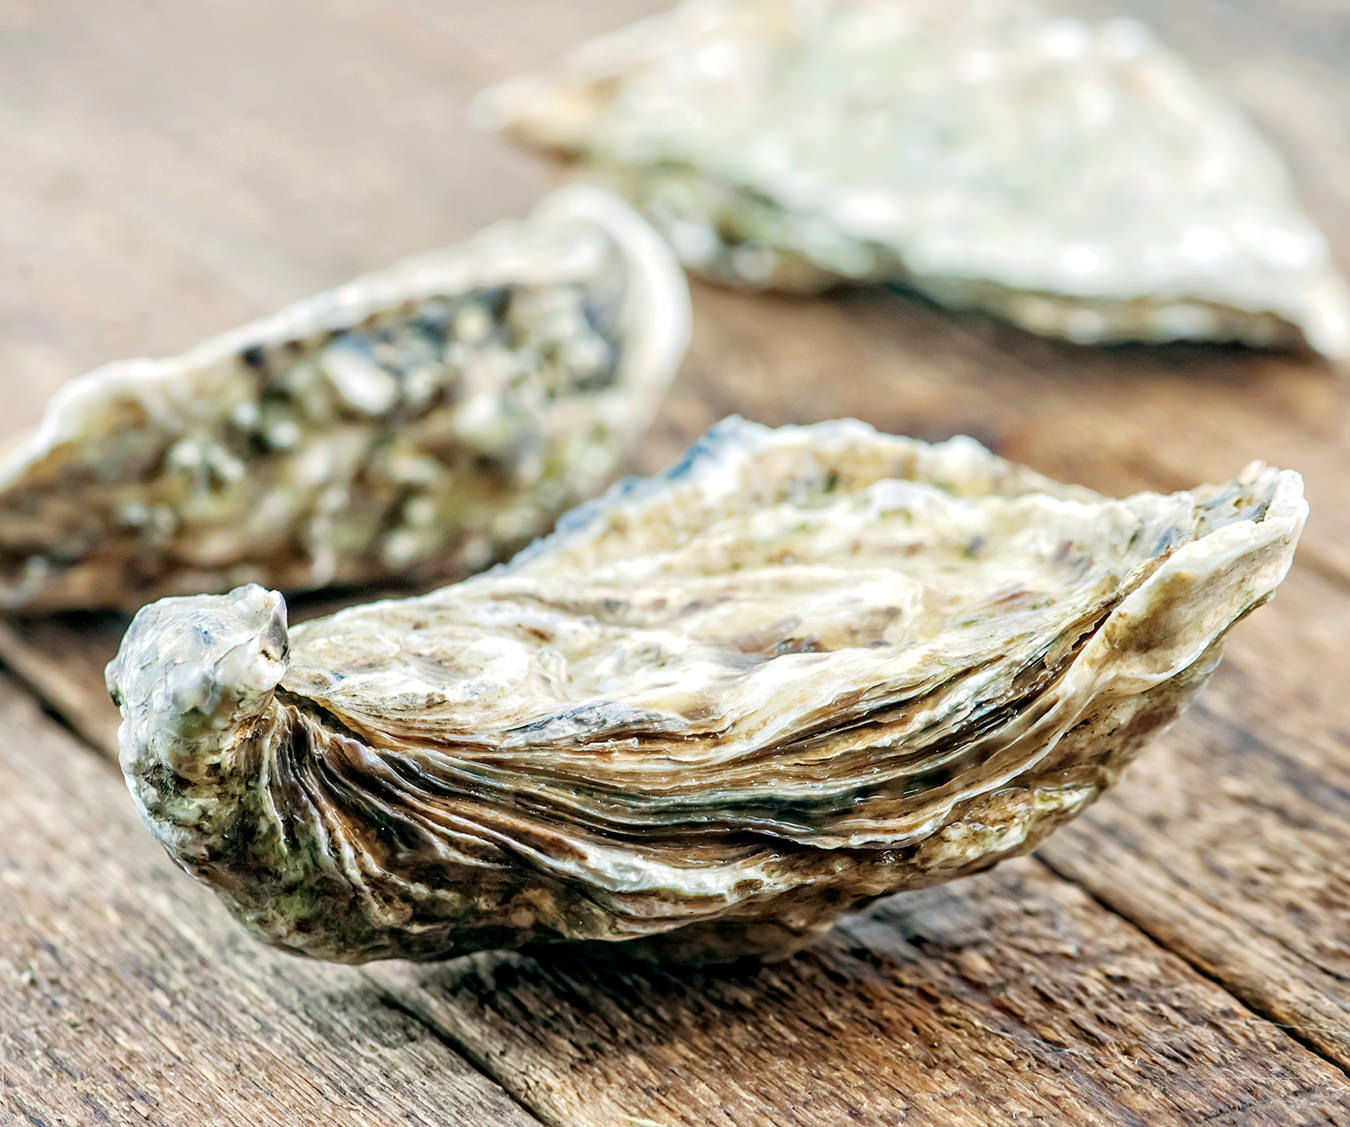 NUVO Magazine: FYI Food, Oysters